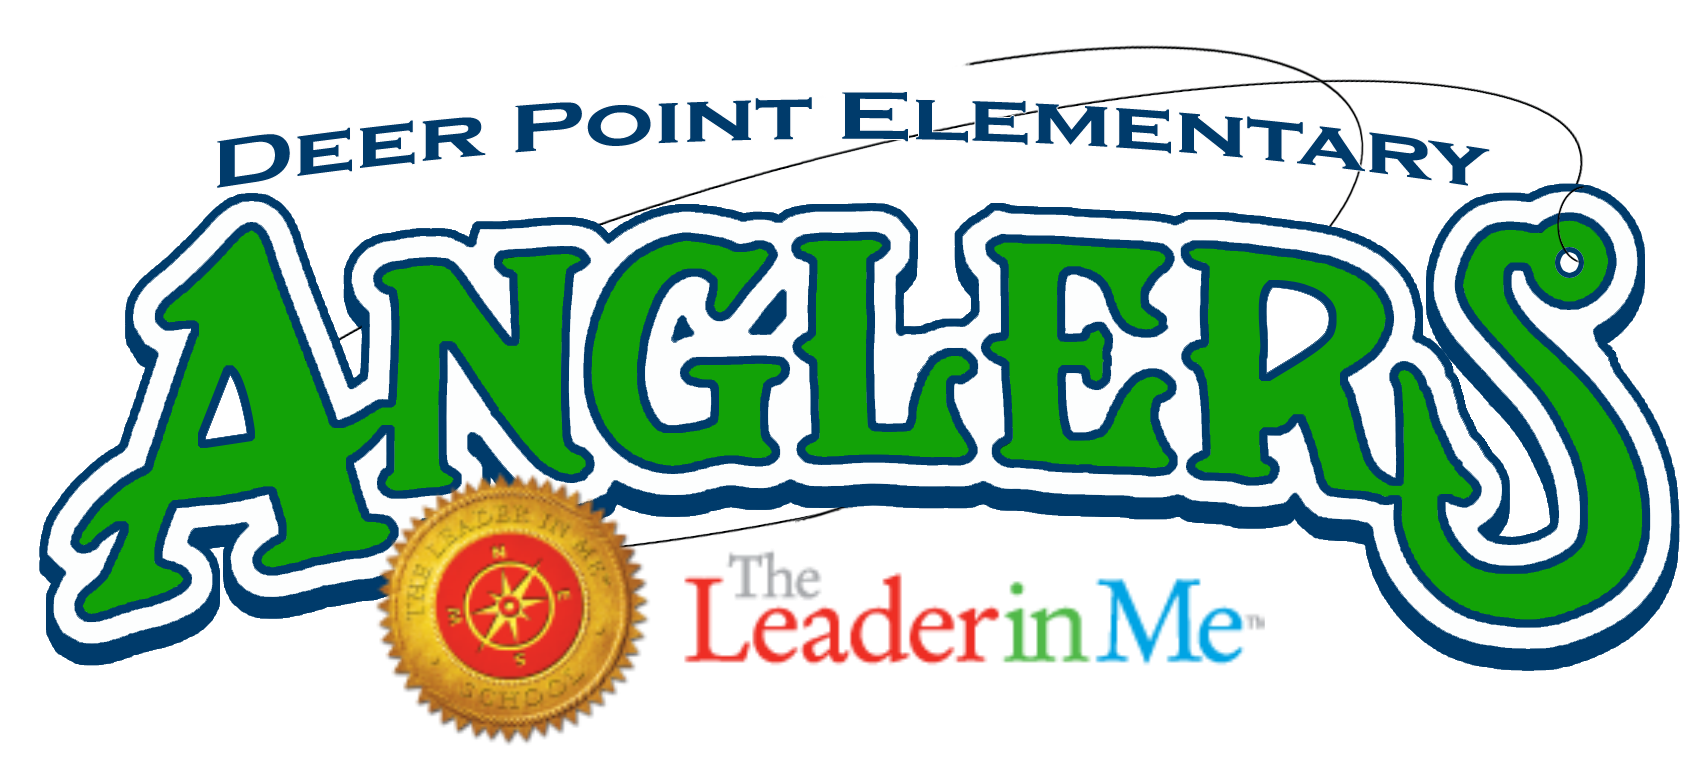 Yearbook clipart elementary. The leader in me